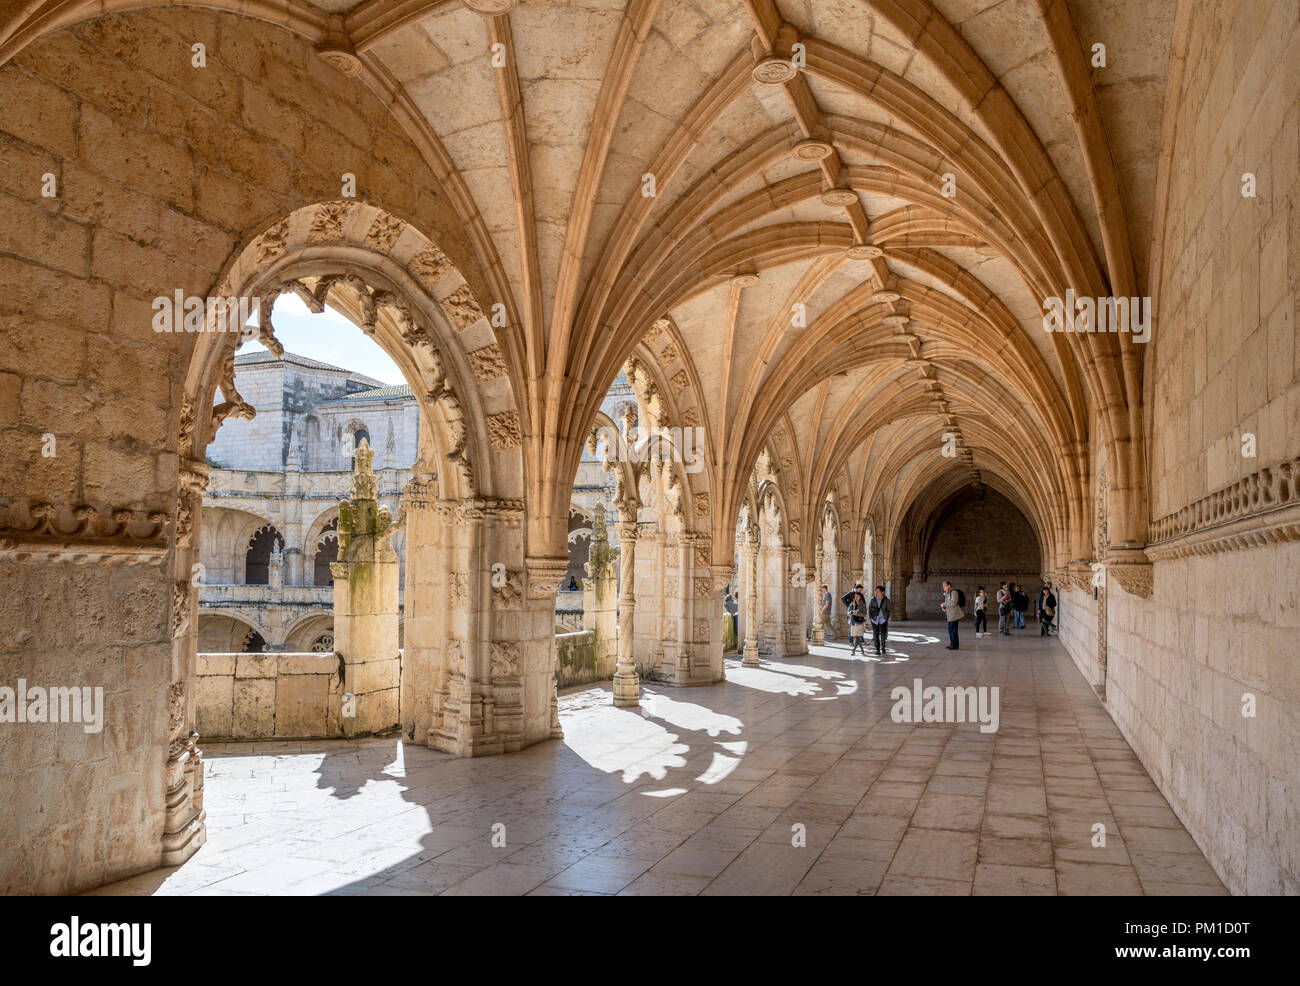 Upper Cloisters of the Jeronimos Monastery ( Mosteiro dos Jerónimos ), Belem district, Lisbon, Portugal - Stock Image